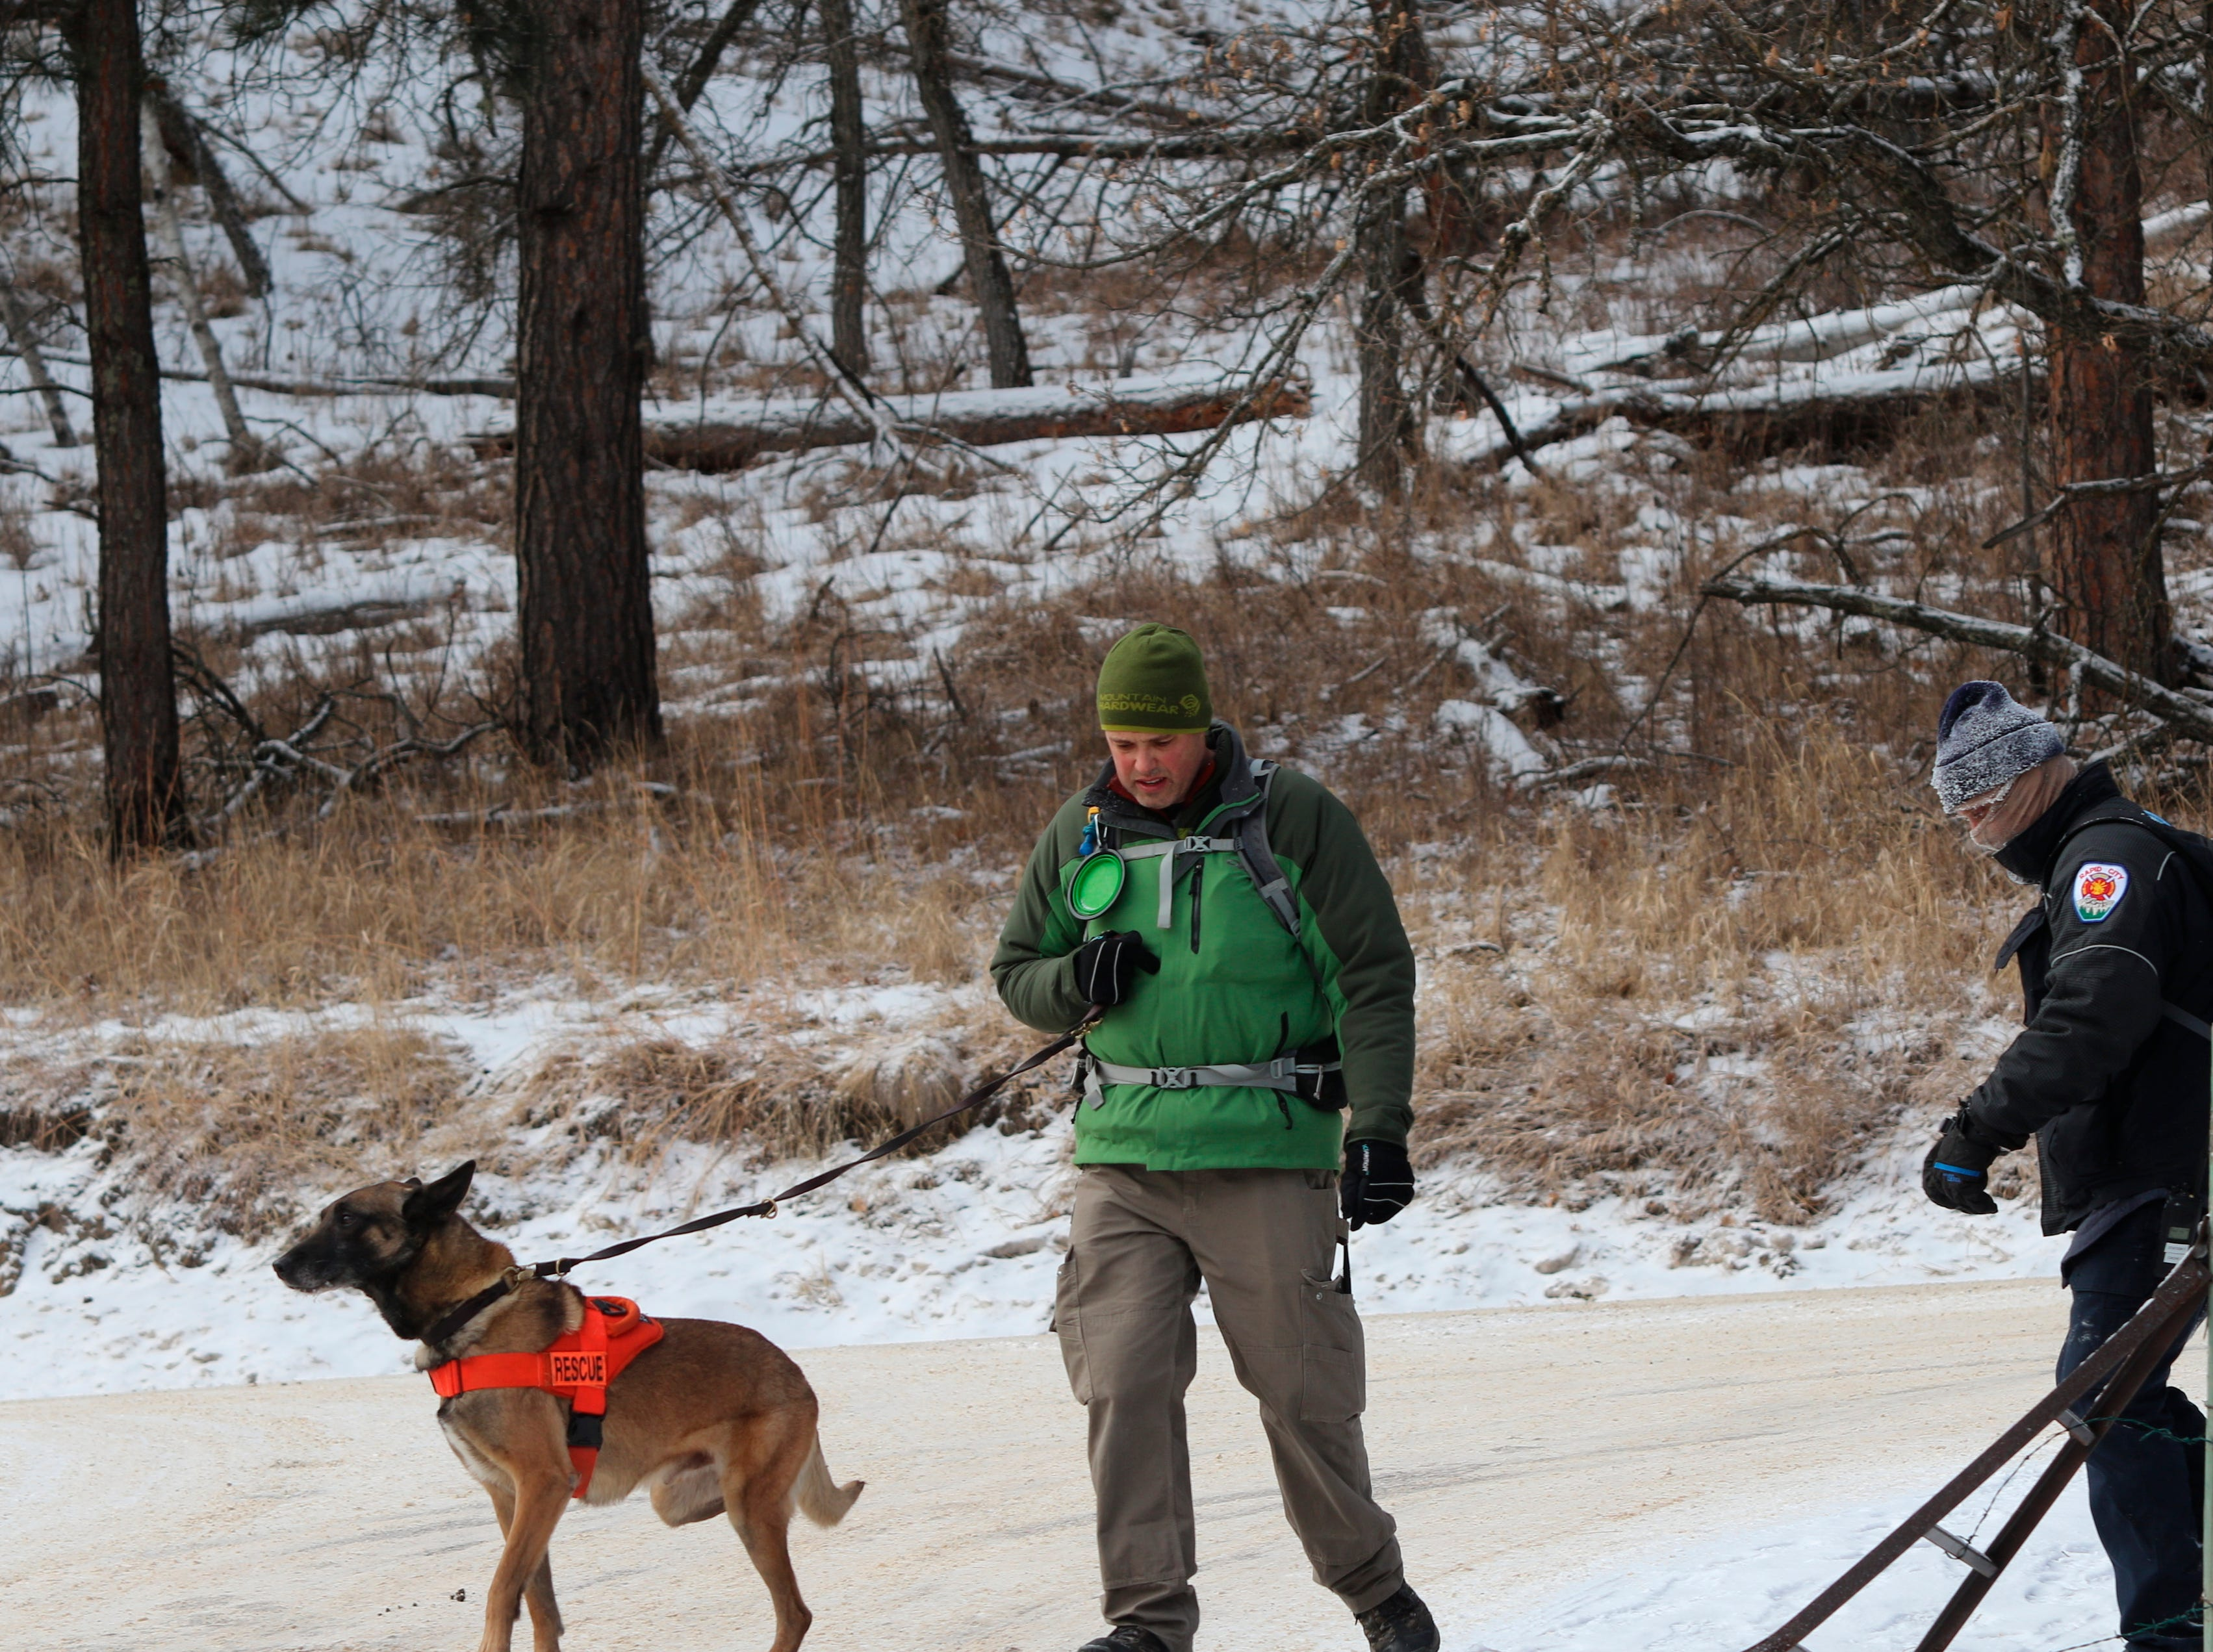 Cisco, a search-and-rescue dog with the Rapid City Fire Department, returns from searching for 9-year-old Serenity Dennard near Rockerville, S.D., Monday, Feb. 4, 2019. Authorities say that the girl ran away from staff at a residential youth home. (Arielle Zionts/Rapid City Journal via AP)